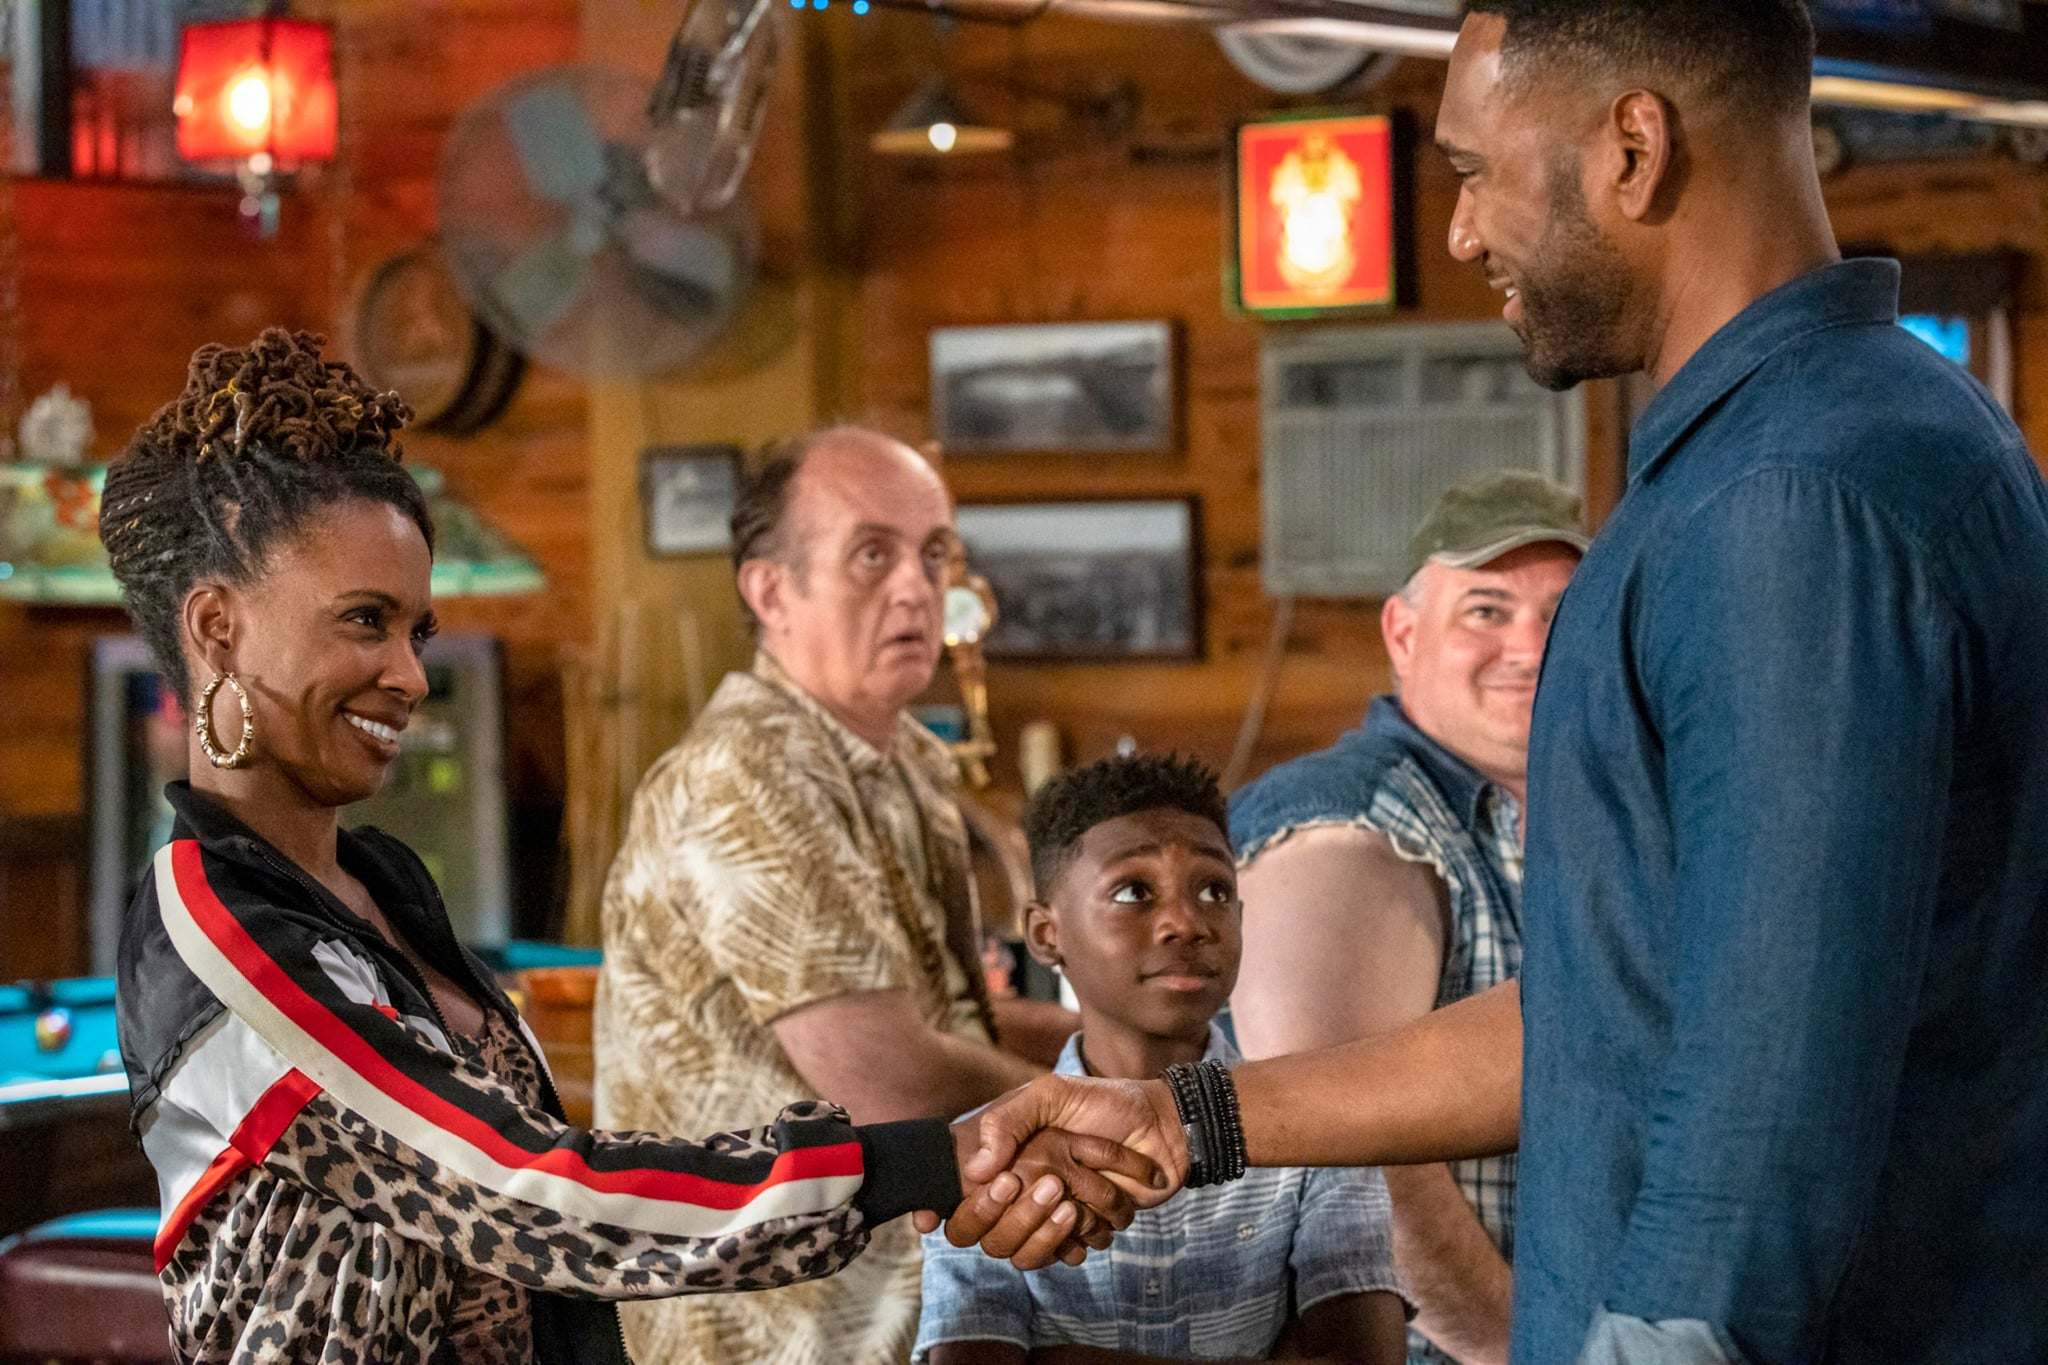 SHAMELESS, from left: Shanola Hampton, Christian Isaiah, Anthony Alabi, 'Which America?', (Season 10, ep. 1003, aired Nov. 24, 2019). photo: Paul Sarkis / Showtime / courtesy Everett Collection